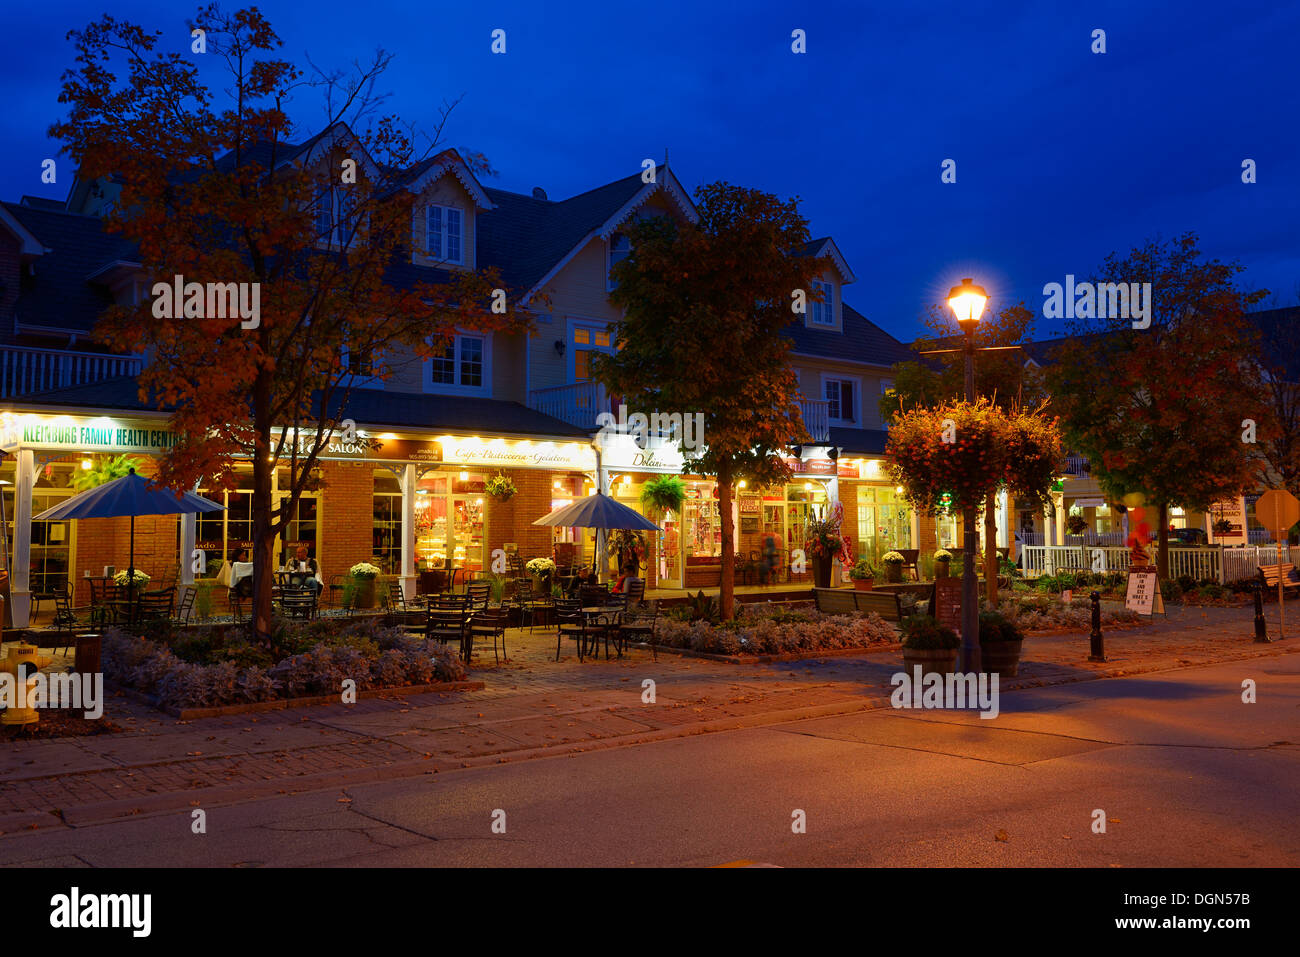 Patio eateries on Islington Avenue at dusk in Kleinburg Ontario - Stock Image